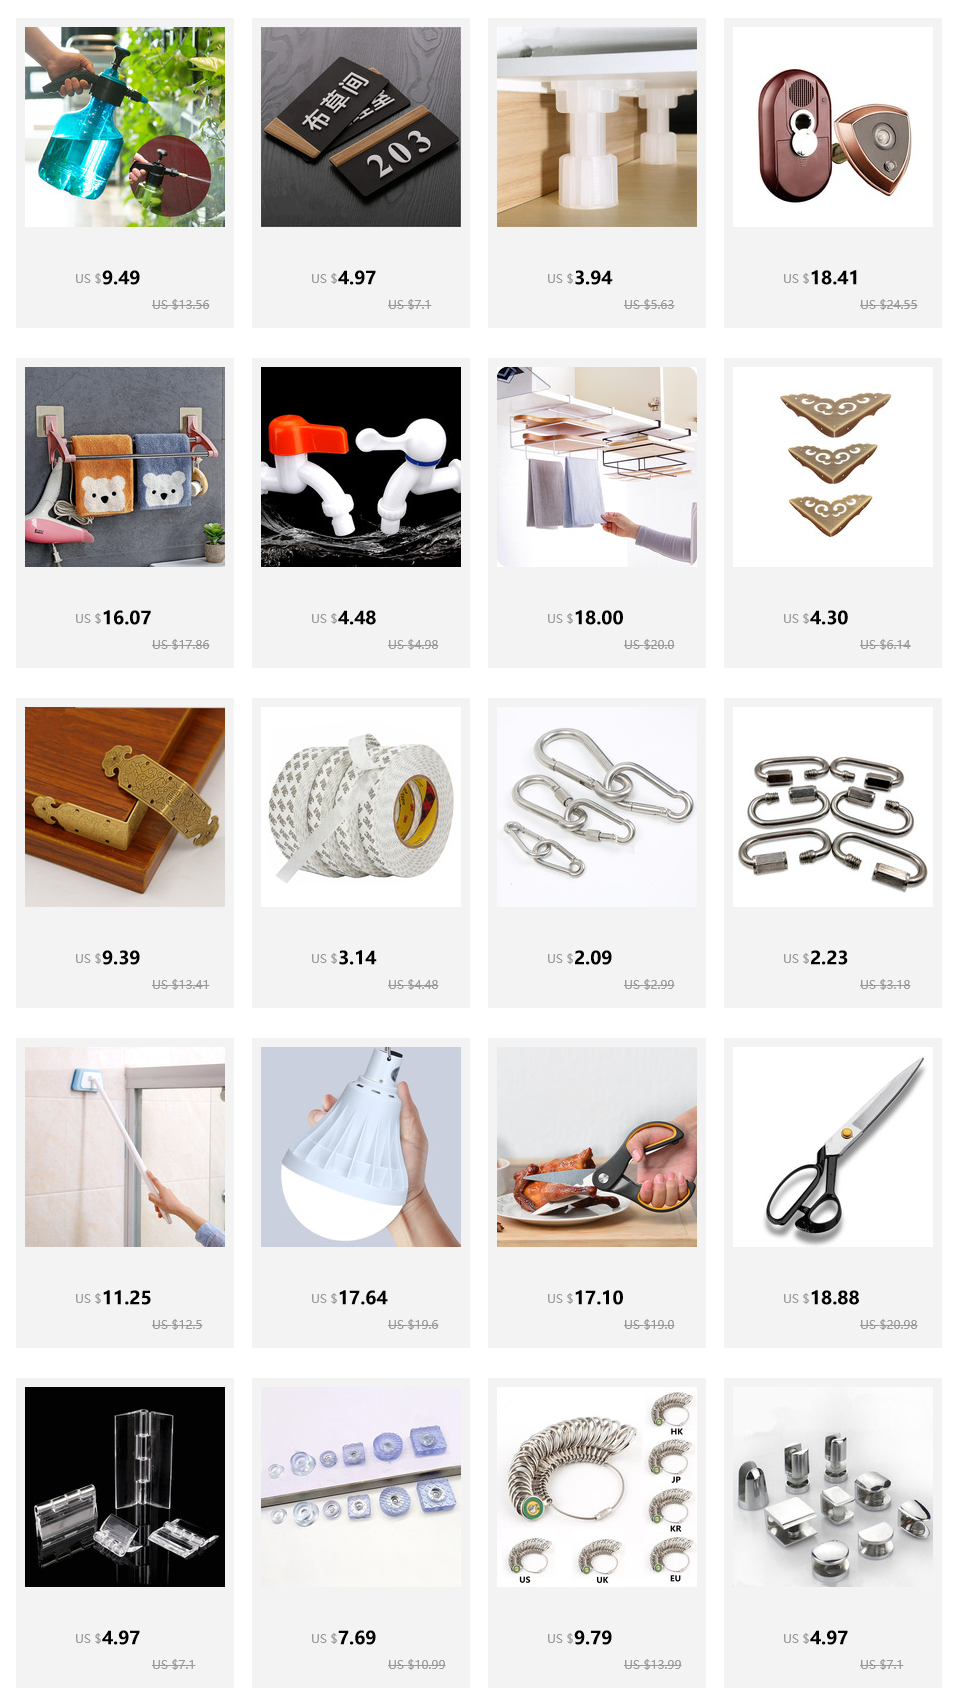 Home kitchen Faucet Repair Tool Set Multi - Function Wrench Sleeve Faucet Spool Nozzle Hose Installation Disassembly